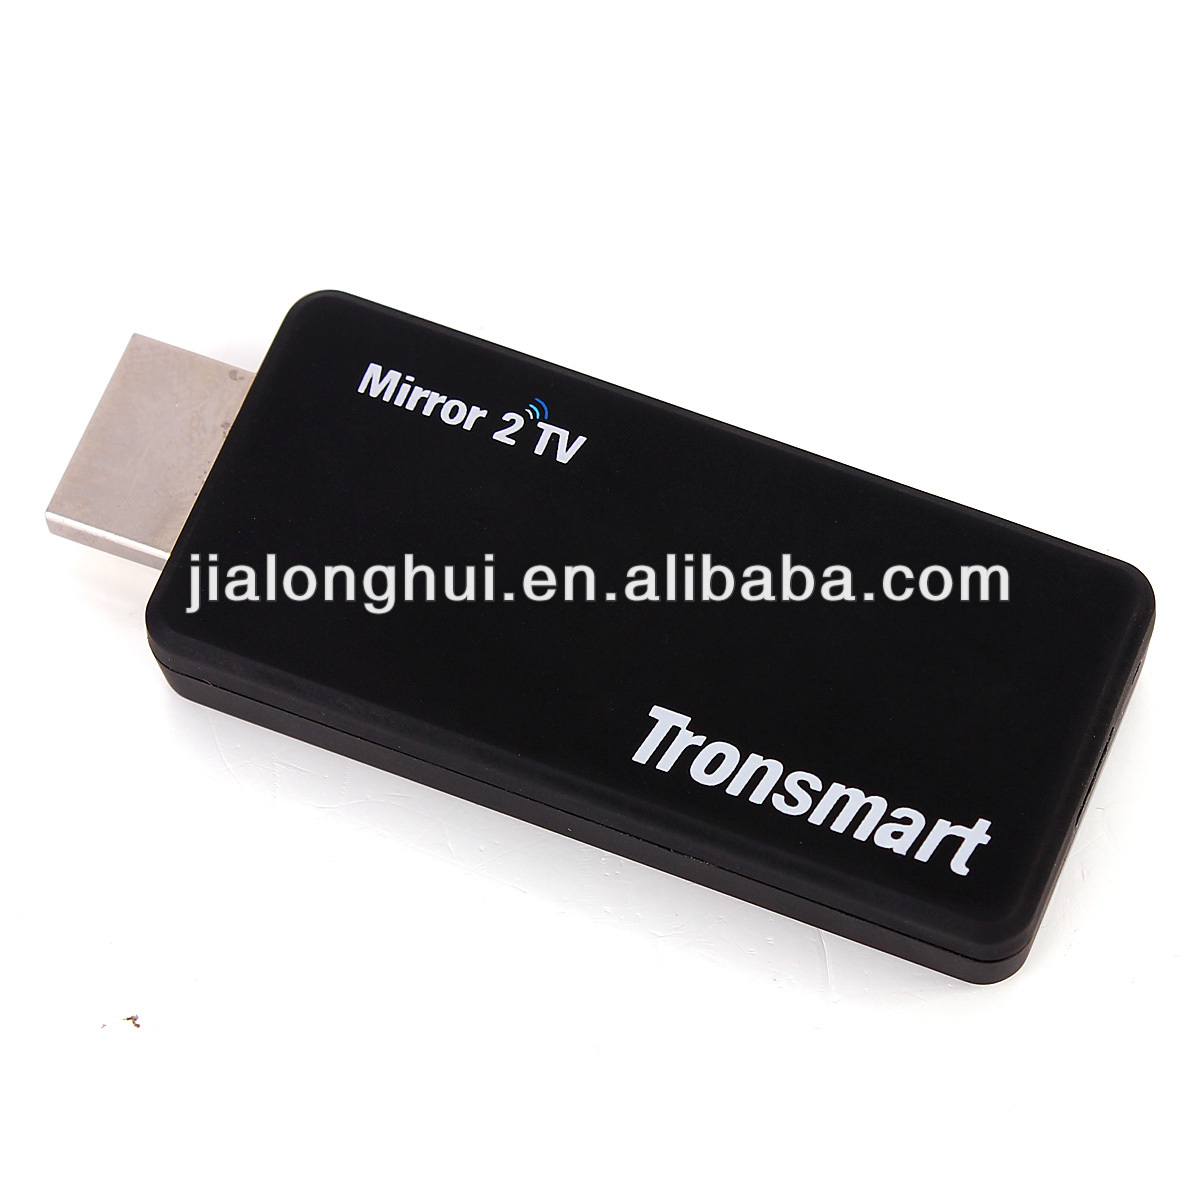 Tronsmart T1000 Miracast <strong>Dongle</strong> Better than Google Chromecast <strong>HDMI</strong> Wireless Display DLNA Ezcast Mirror2TV IPTV Android <strong>TV</strong> Stick